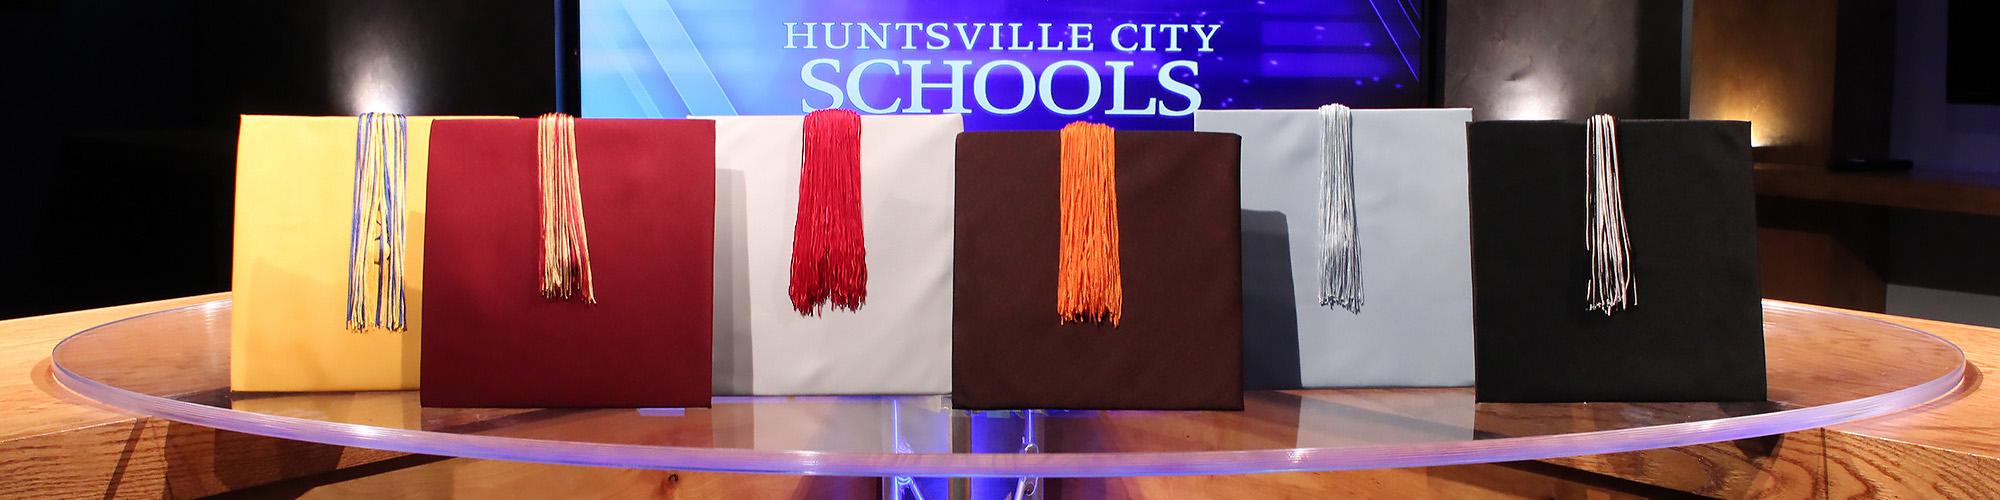 Graduation Caps from each high school lined up on a glass table in front of a screen with the text Huntsville City Schools